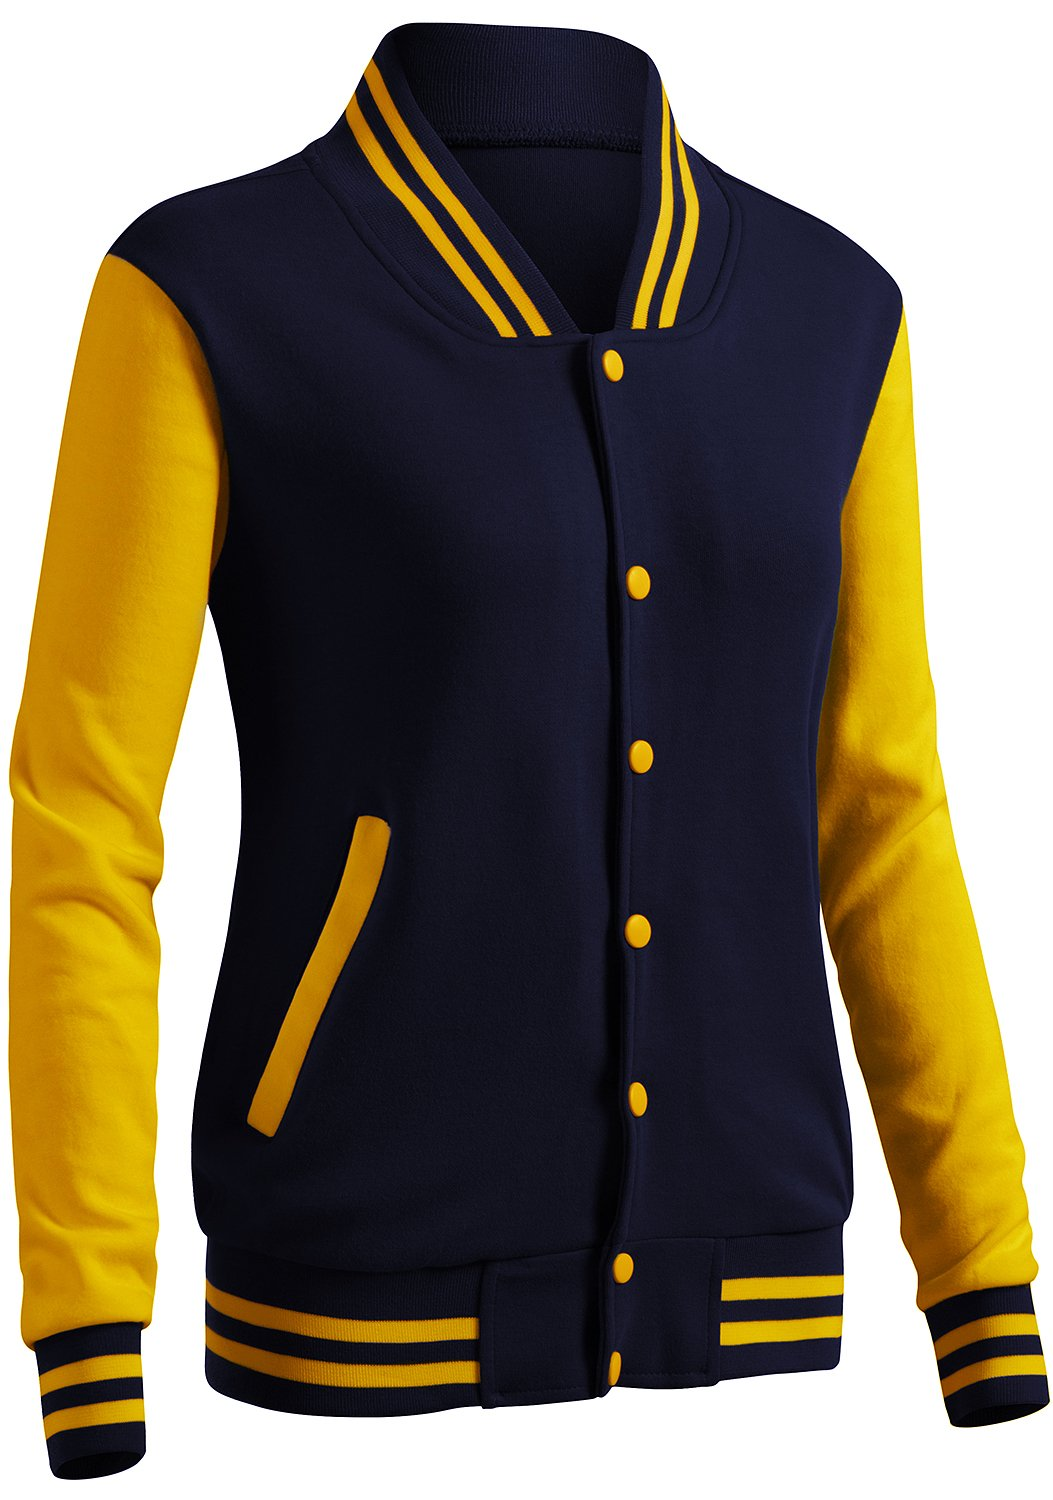 CLOVERY Women's Baseball Uniform Style Long Sleeve Jacket NAVYYELLOW XL